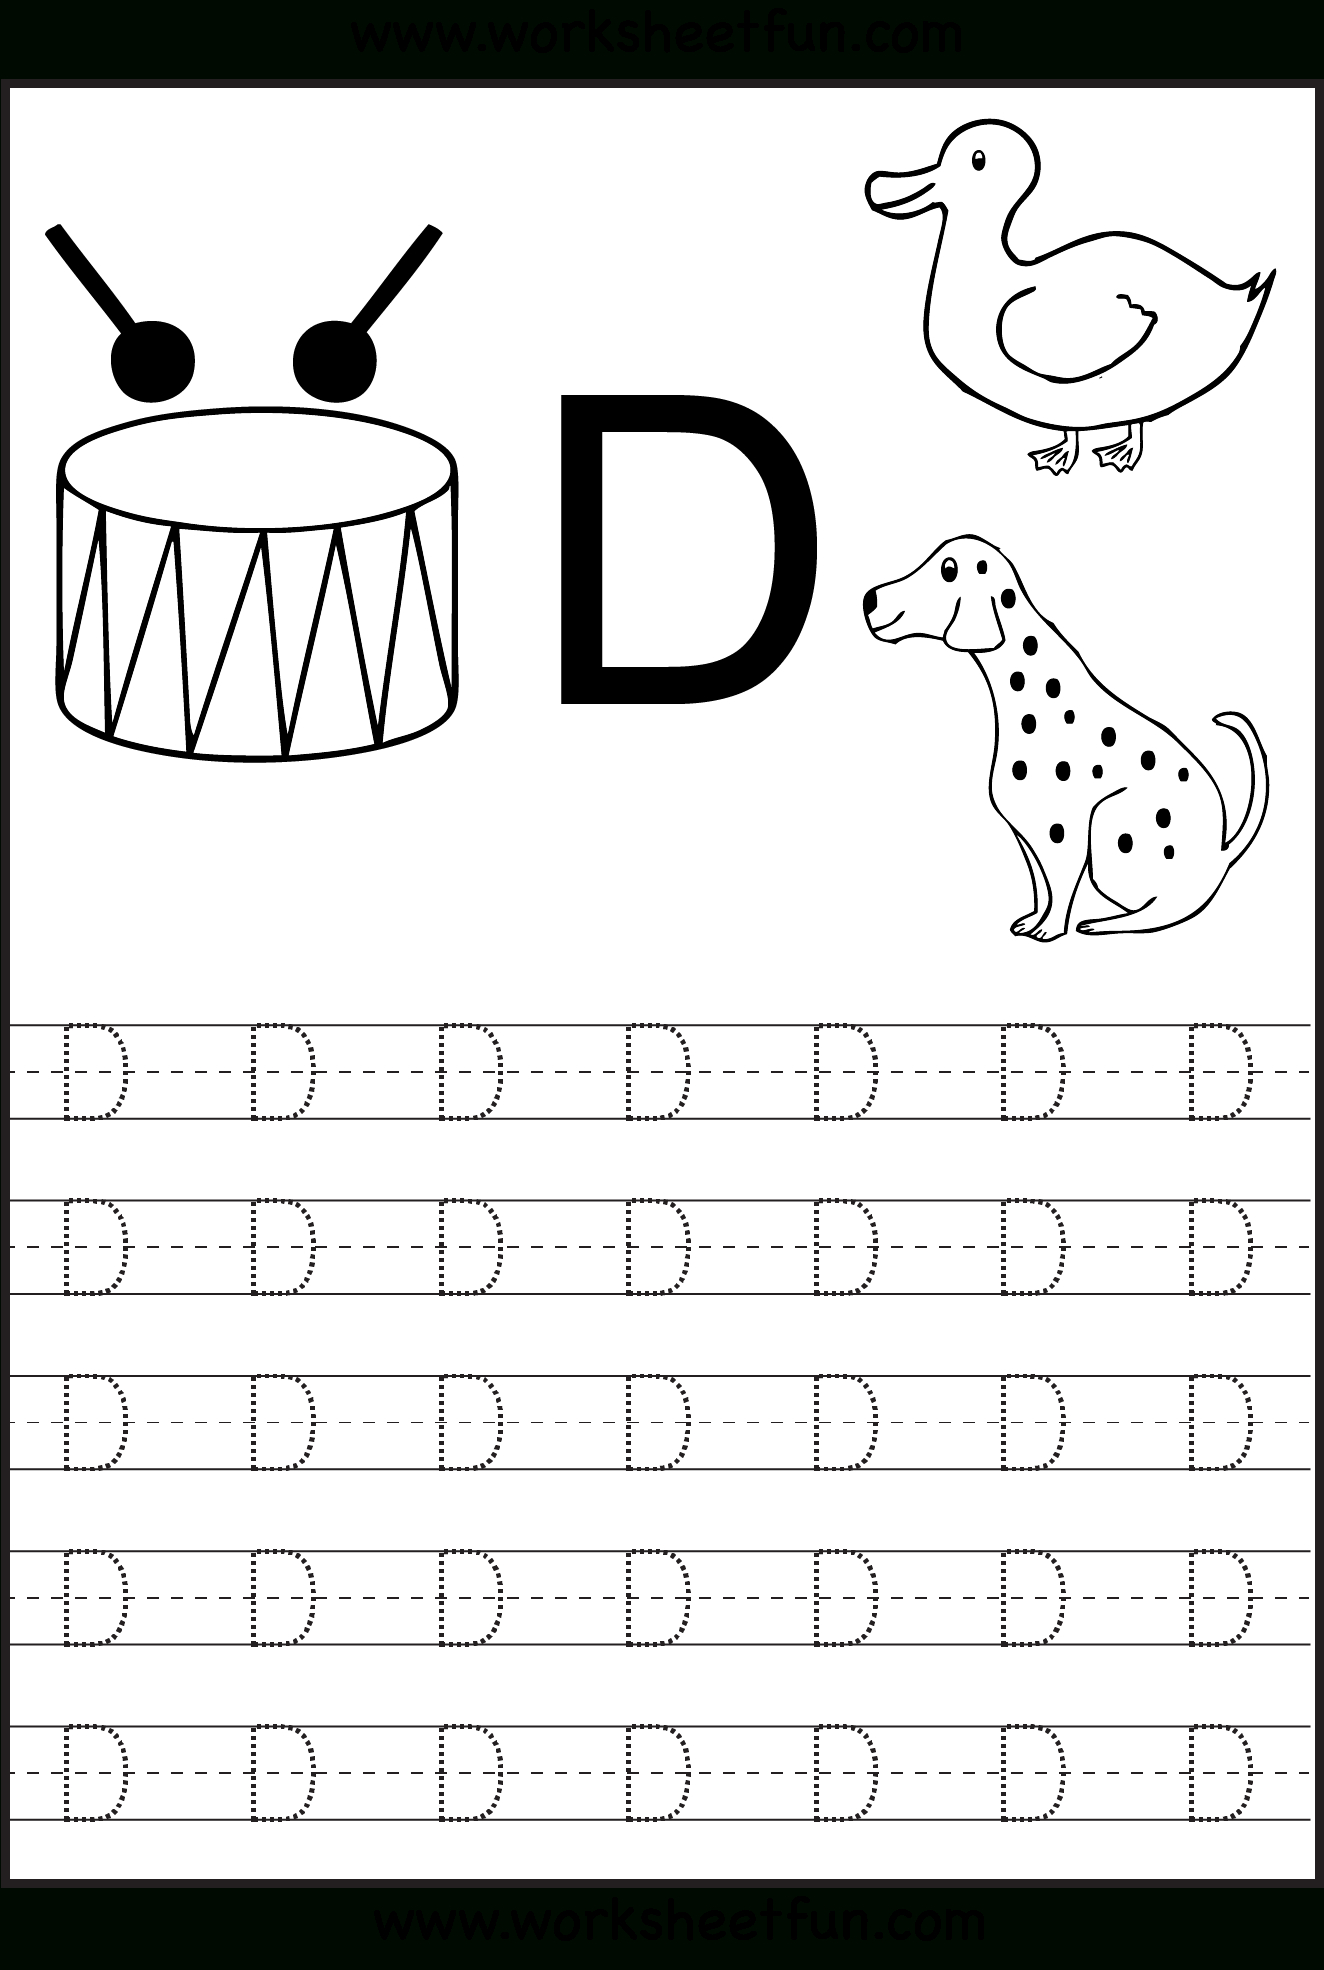 Letter Tracing | Alphabet Worksheets, Letter D Worksheet inside Trace Letter D Worksheets Preschool